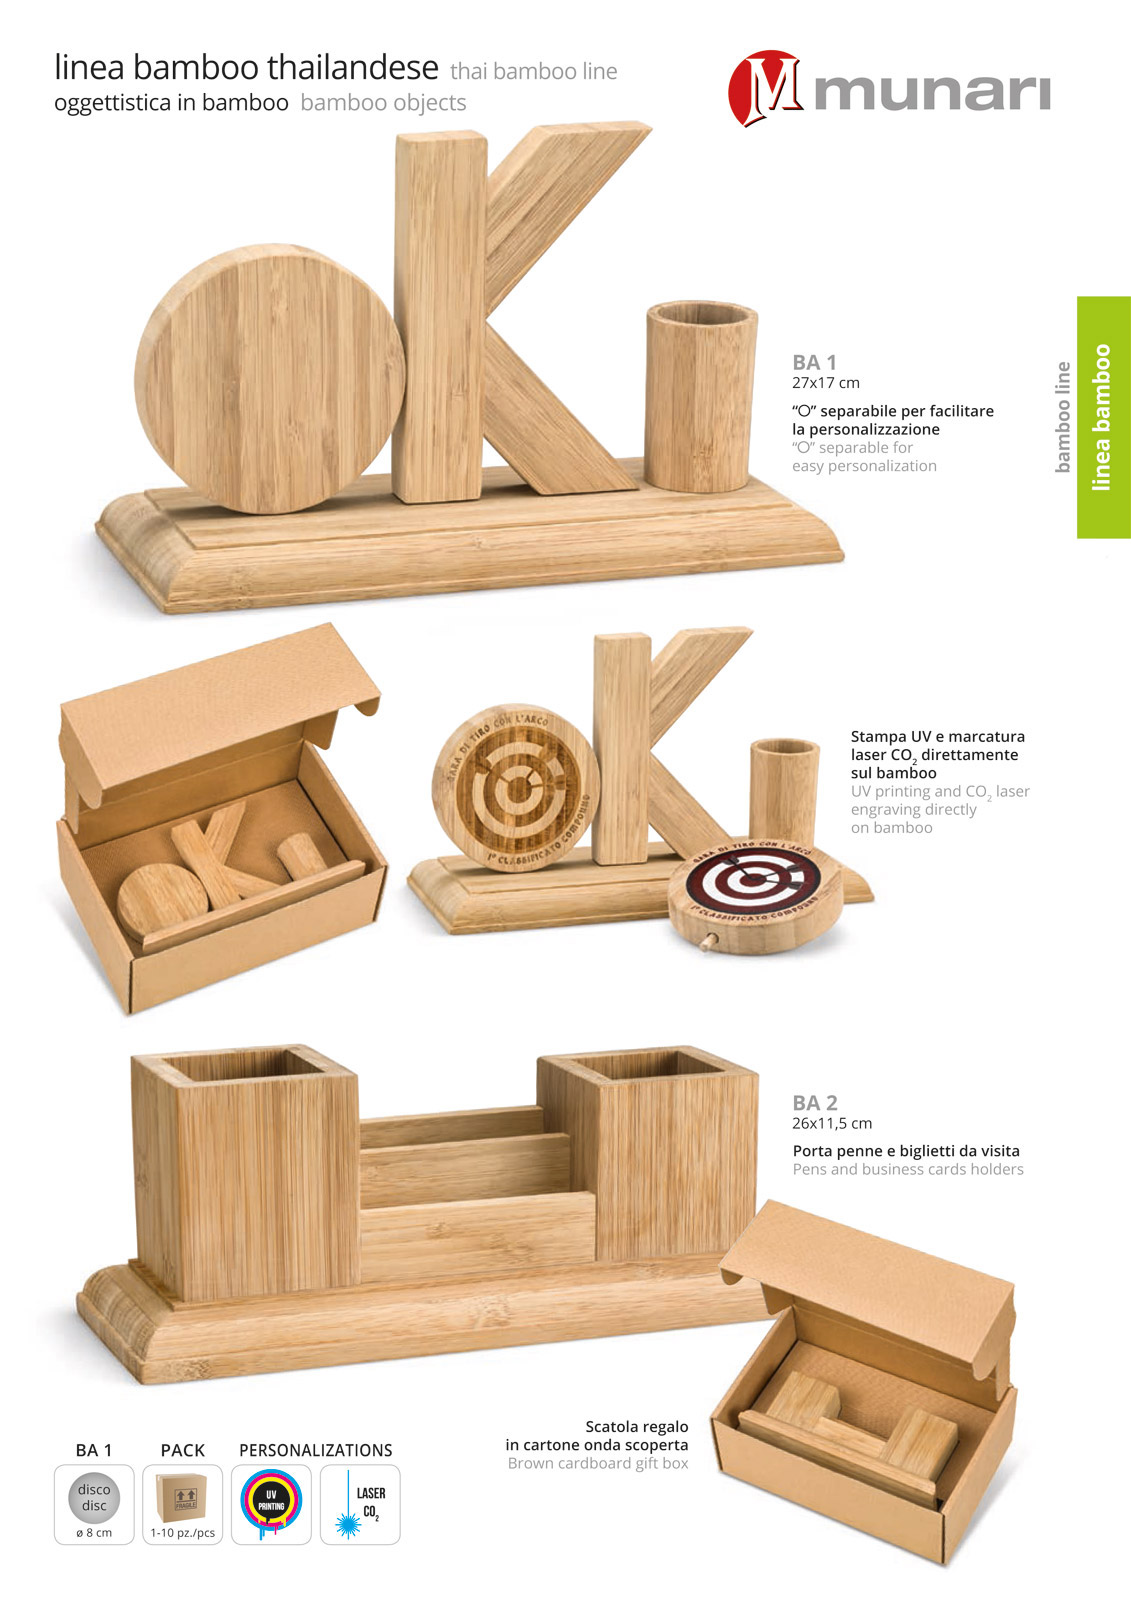 Bamboo Pens and Business Cards Holder BA 2